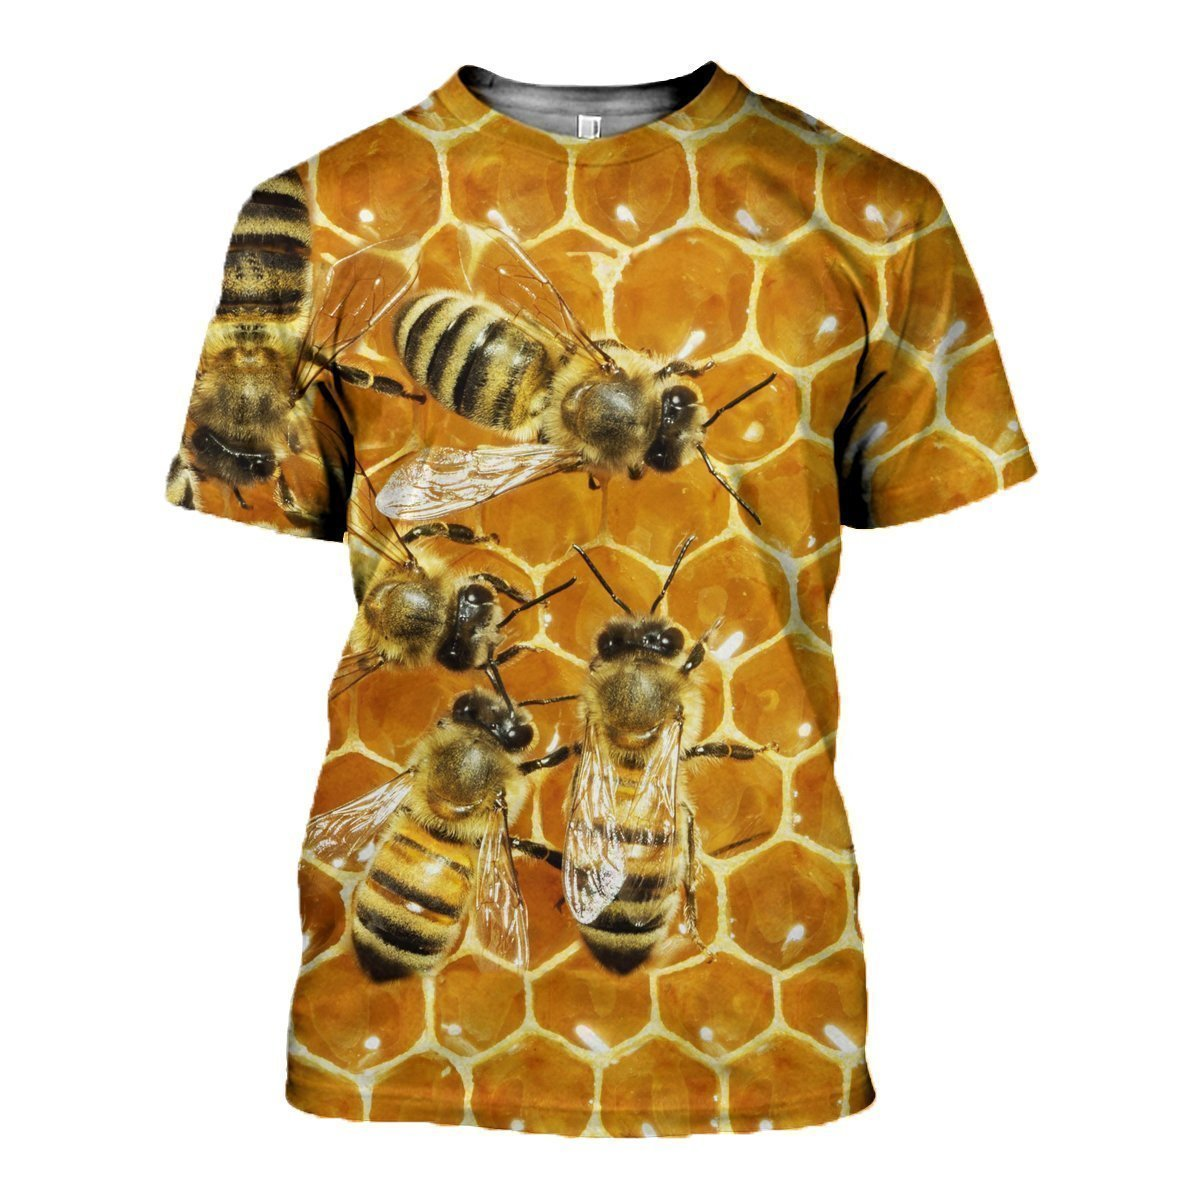 3D All Over Printed Bees Shirts and Shorts - Amaze Style™